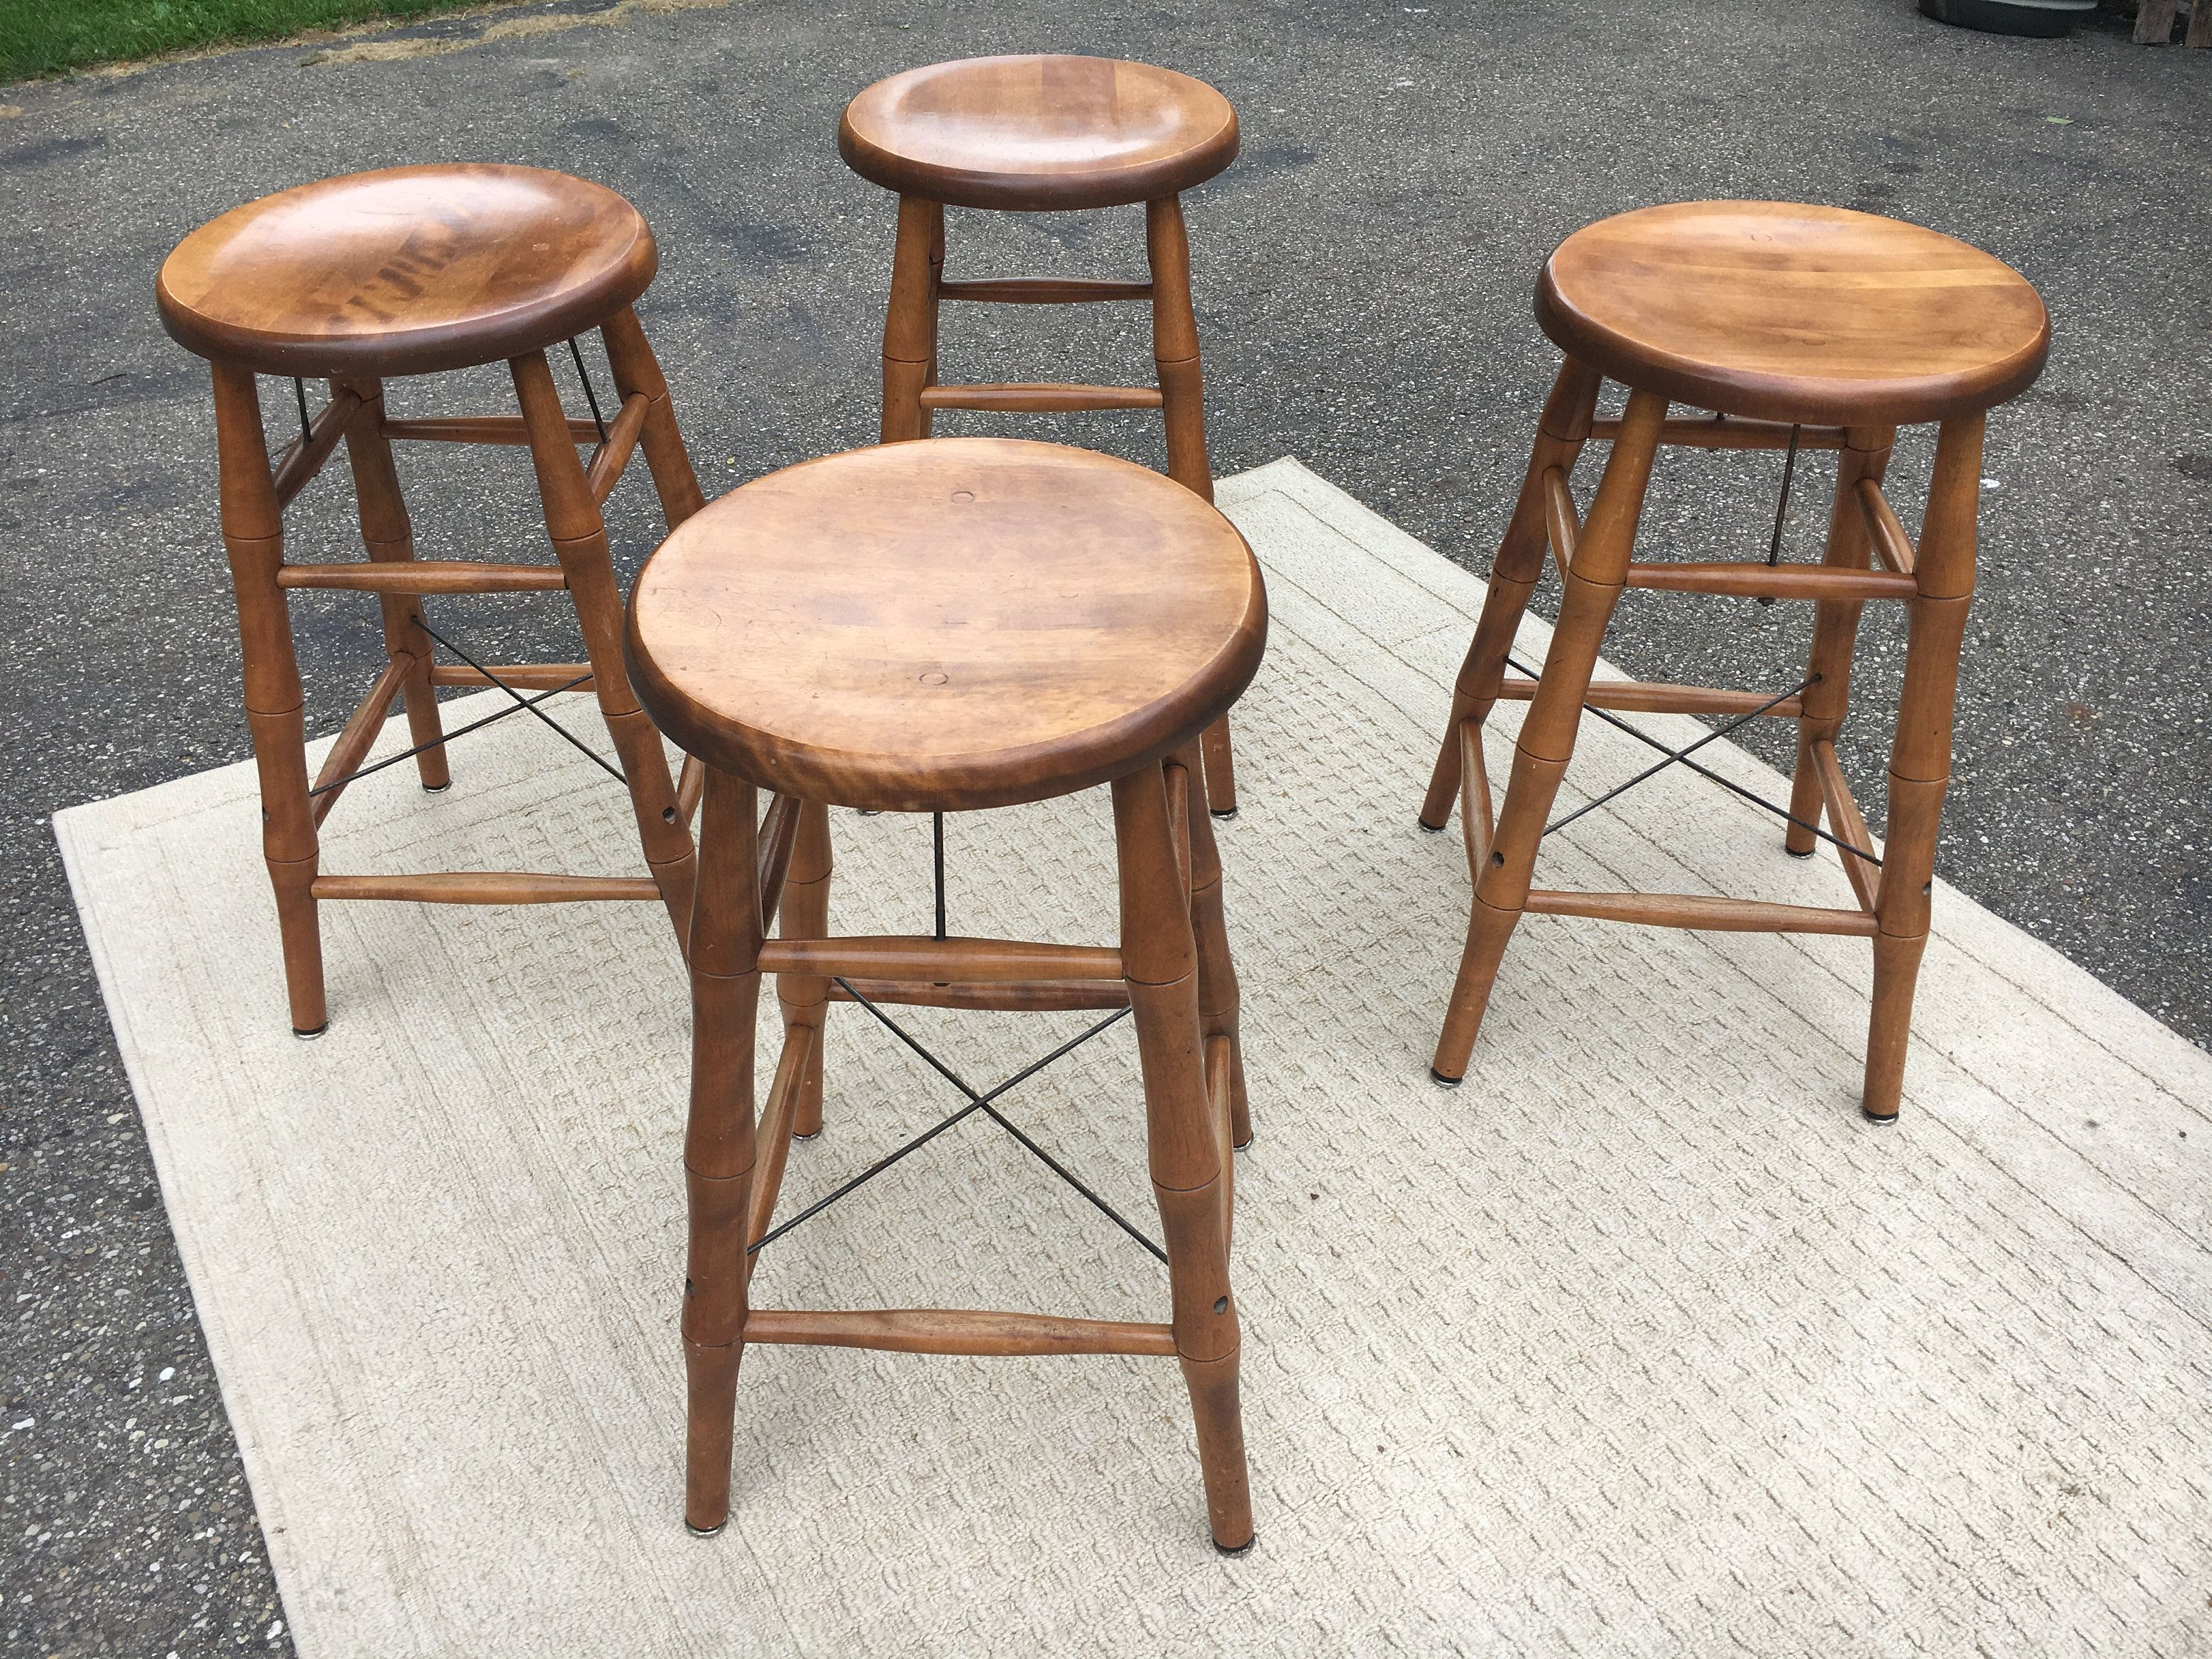 Vintage Maple Bar Stools 4 Bent Bros Stools Bamboo Style Etsy Bar Stools Maple Wood Furniture Wood Decor